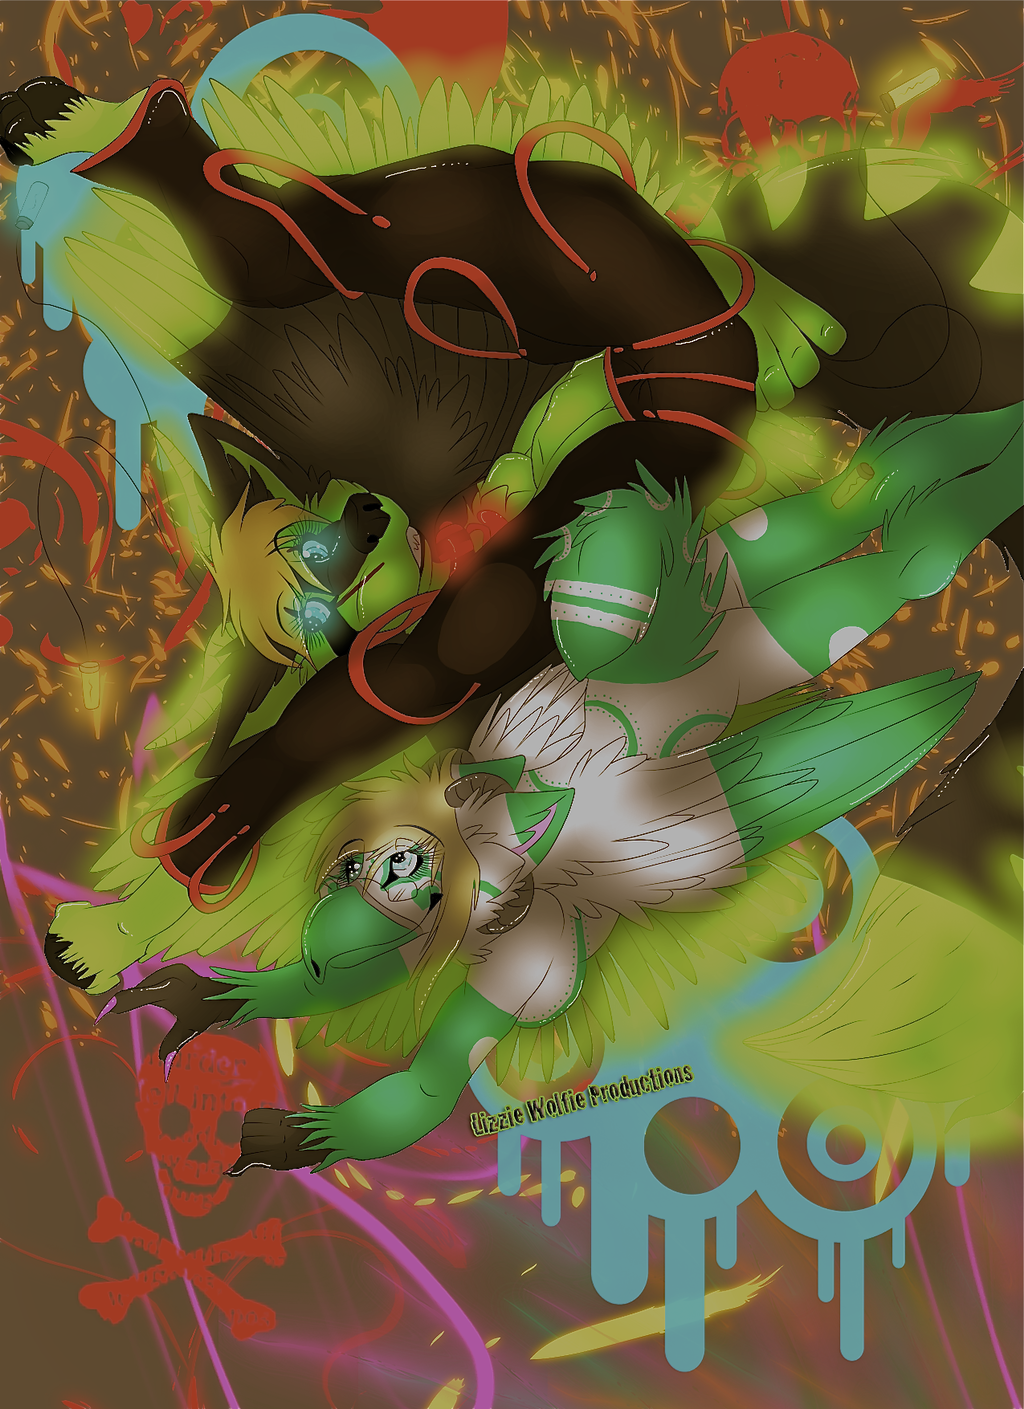 Most recent image: Raving Lizzie And Rainbow Loving Gryphon (Art Project)